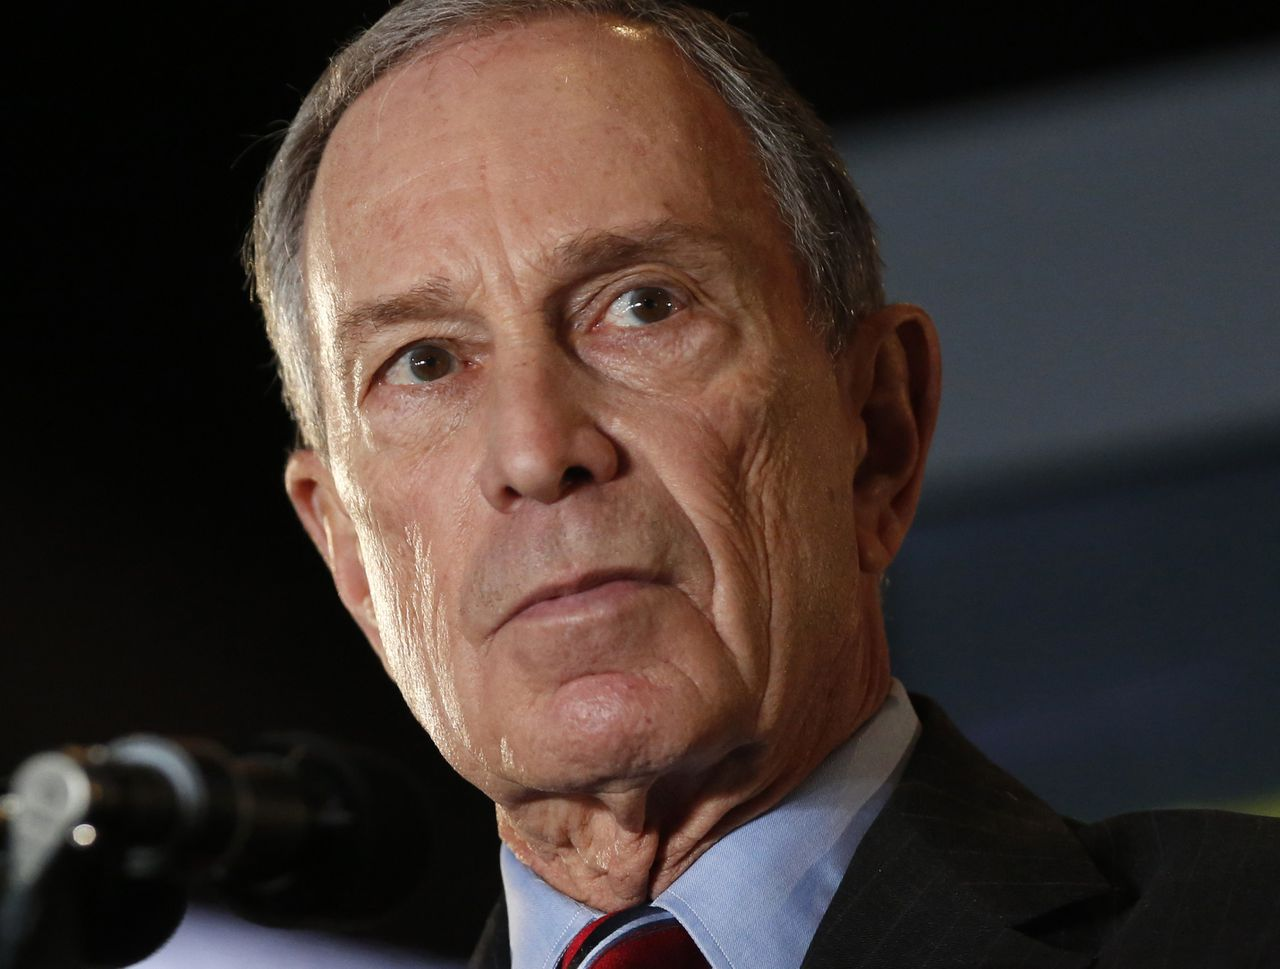 New York City Mayor Michael Bloomberg speaks during his final State of the City speech at the Barclay's Center in Brooklyn, New York, February 14, 2013. Bloomberg proposed a ban on Styrofoam, the substance commonly used for take-out food containers that is almost impossible to recycle. REUTERS/Brendan McDermid (UNITED STATES - Tags: POLITICS)